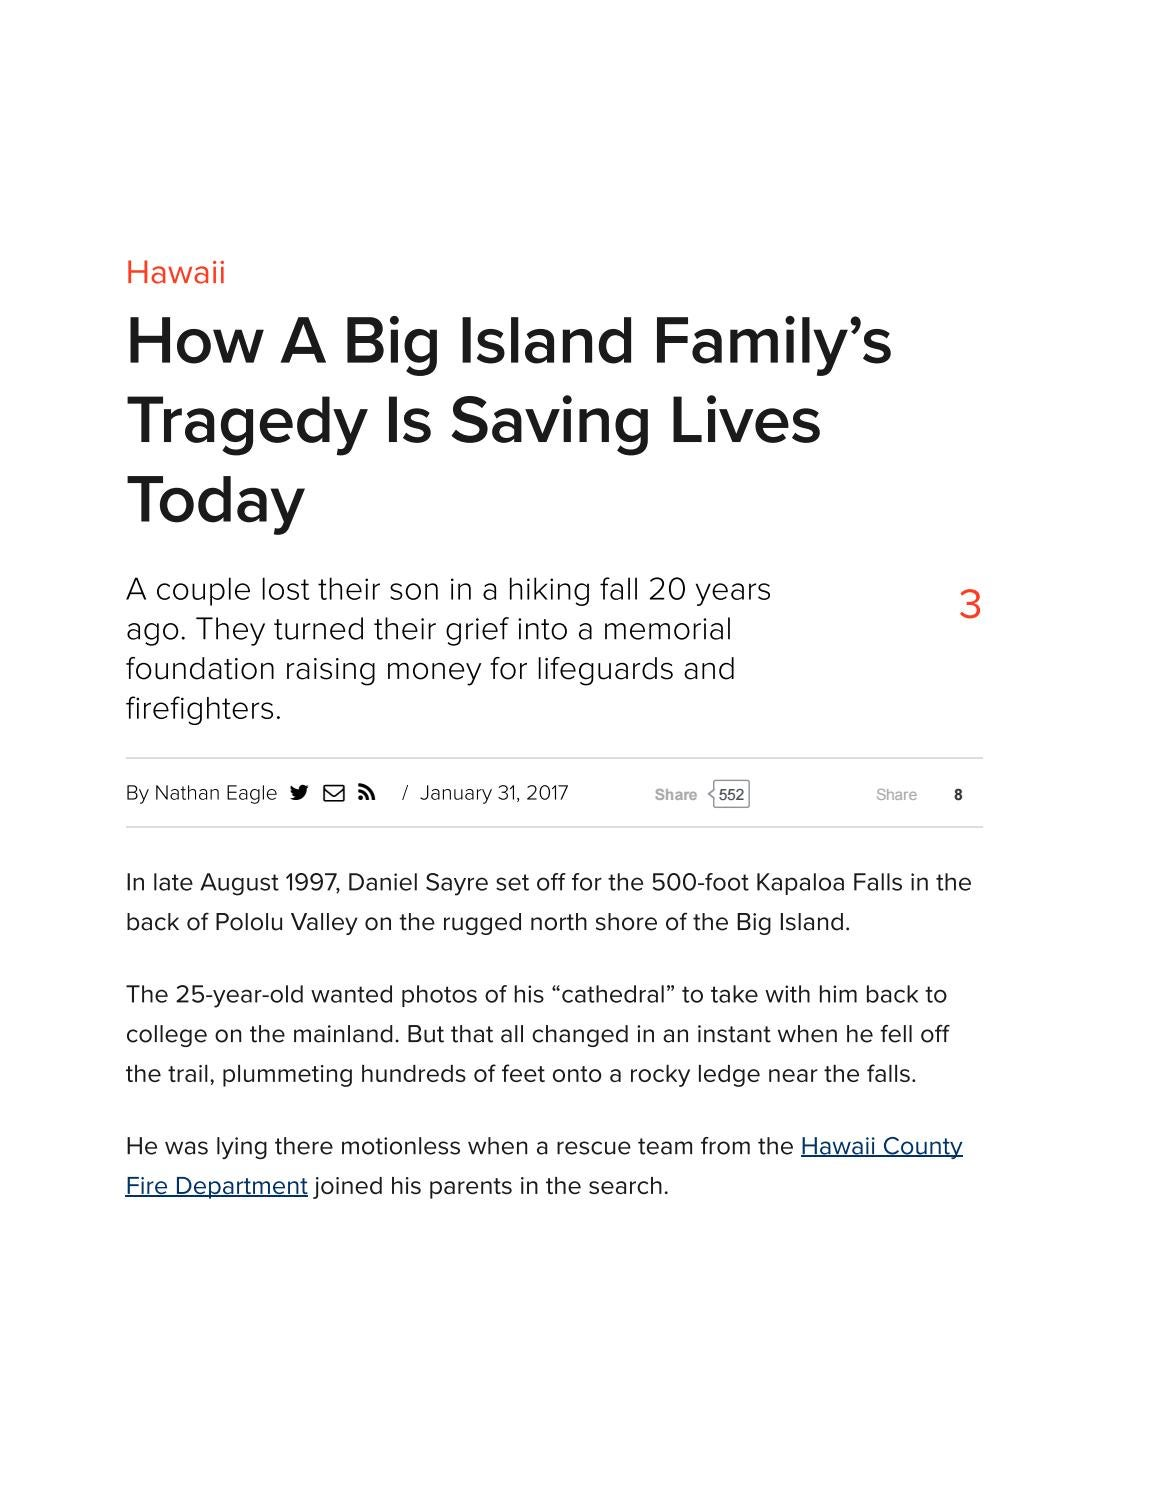 How a Big Island Family's Tragedy is Saving Lives Today by